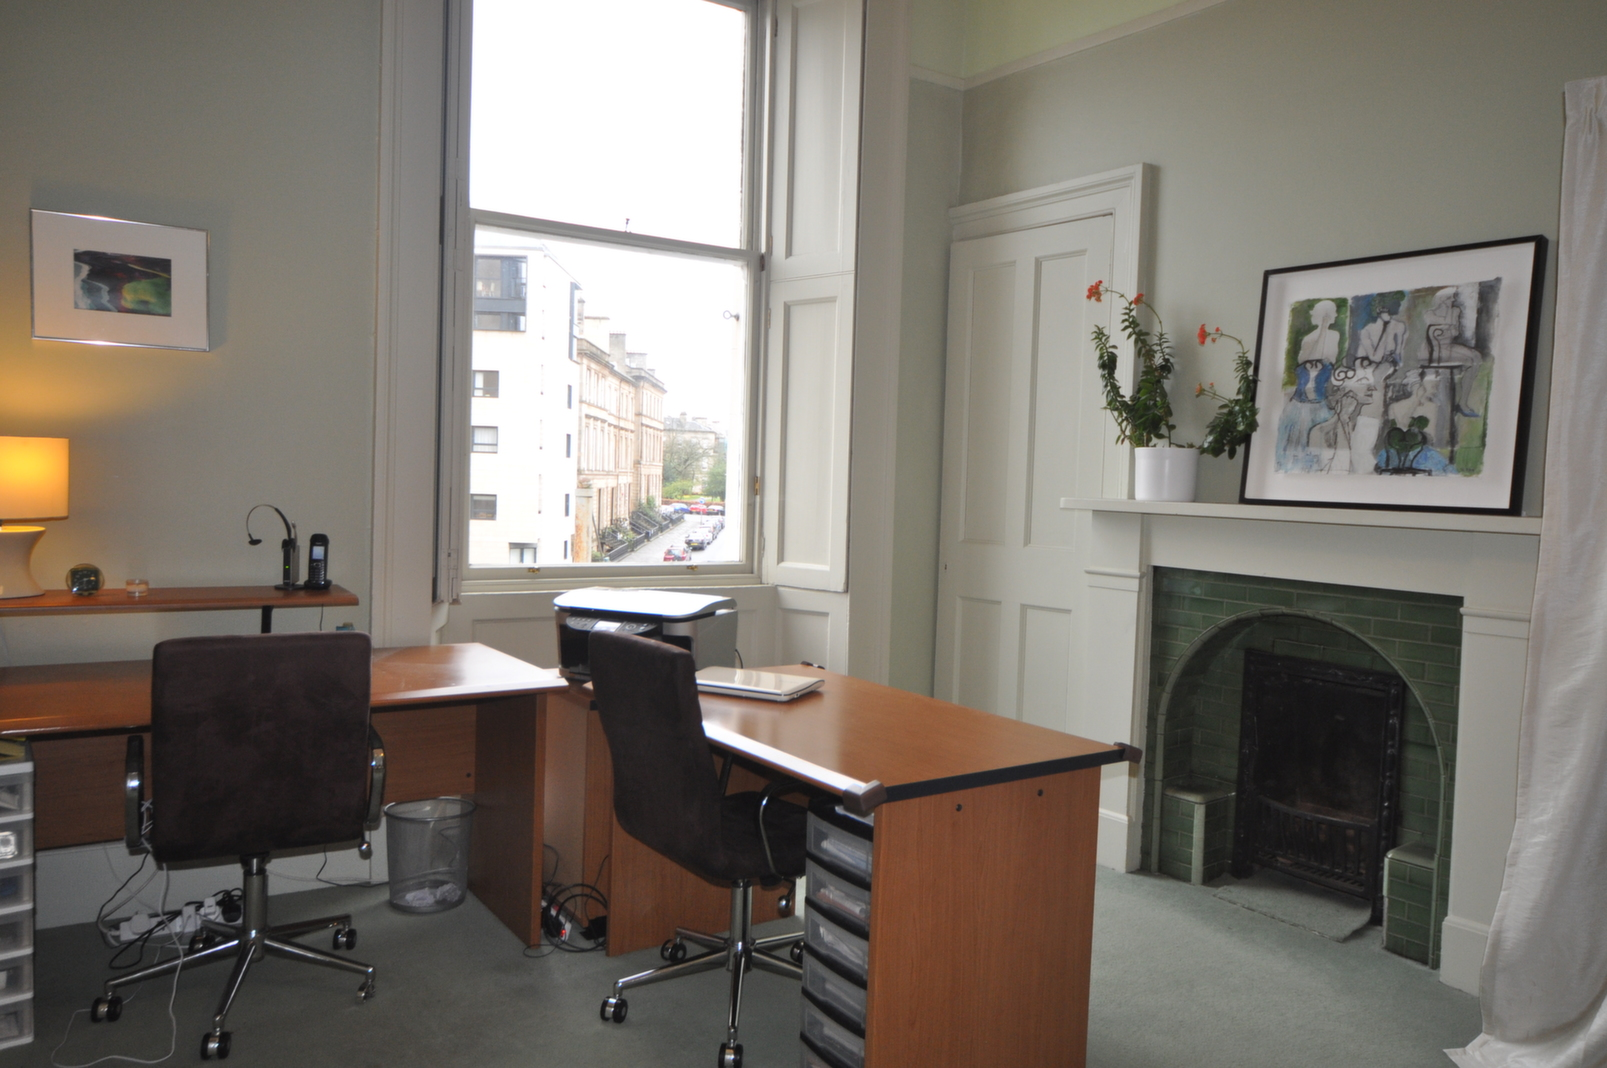 4 Bed Flat to Rent - Lynedoch Street, Glasgow, G3 6EU